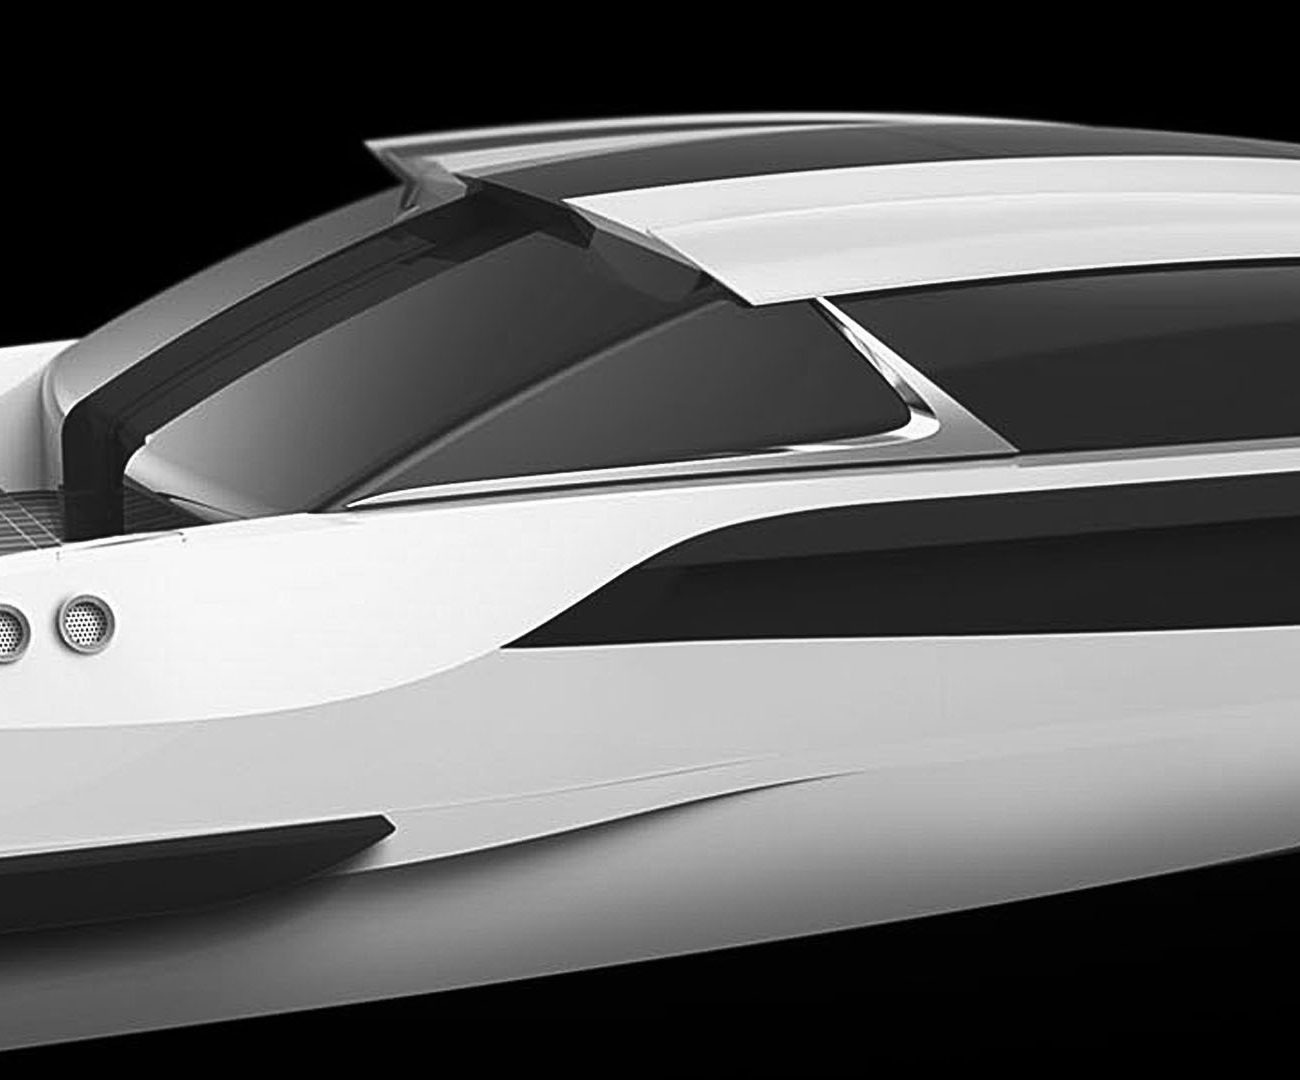 View of Luxurious limousine superyacht tender boat by Hamid Bekradi